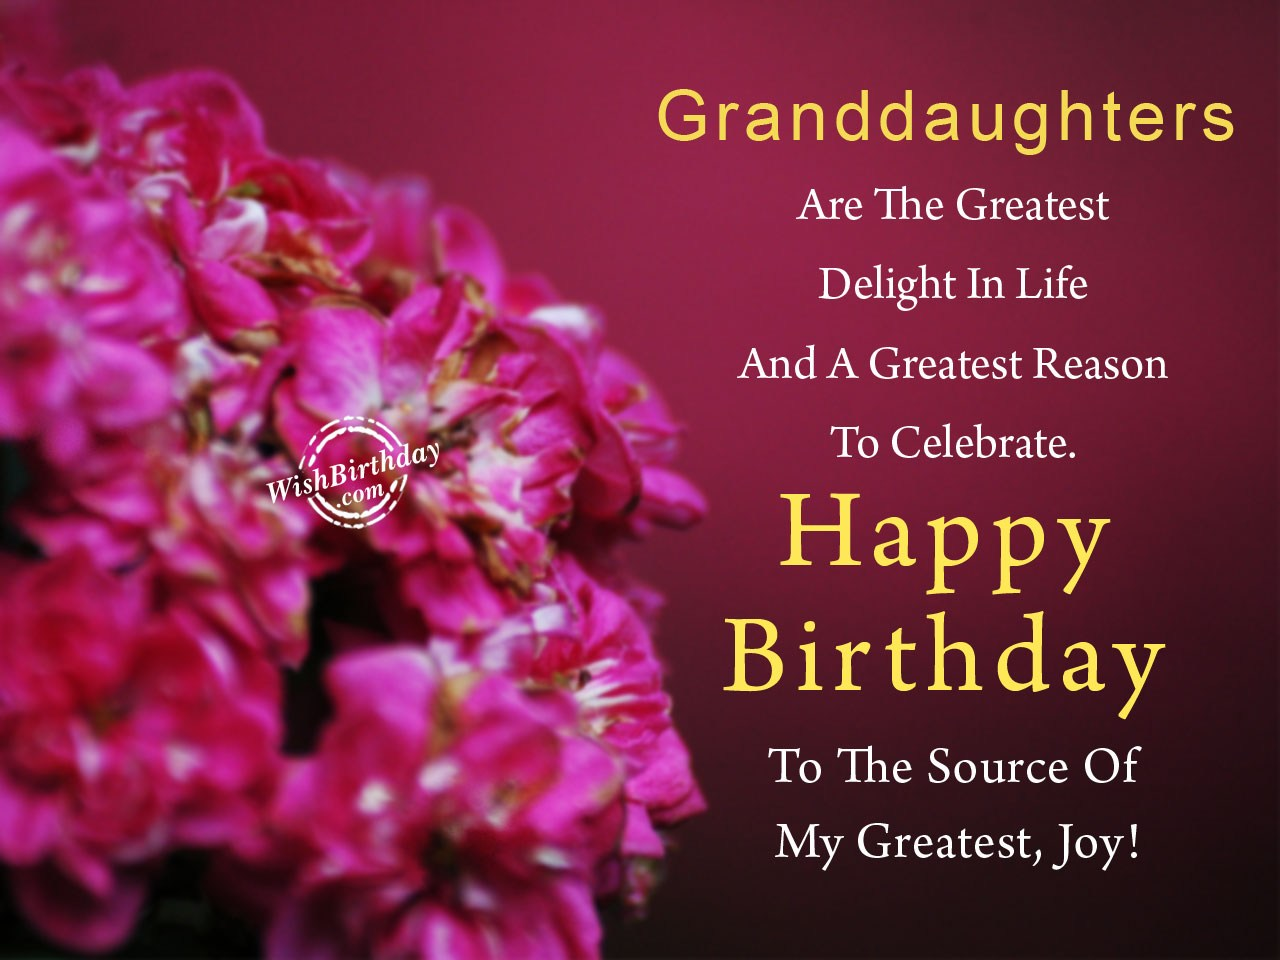 happy birthday to my granddaughter images ; Granddaughters-Are-The-Greatest-Delight-In-Life